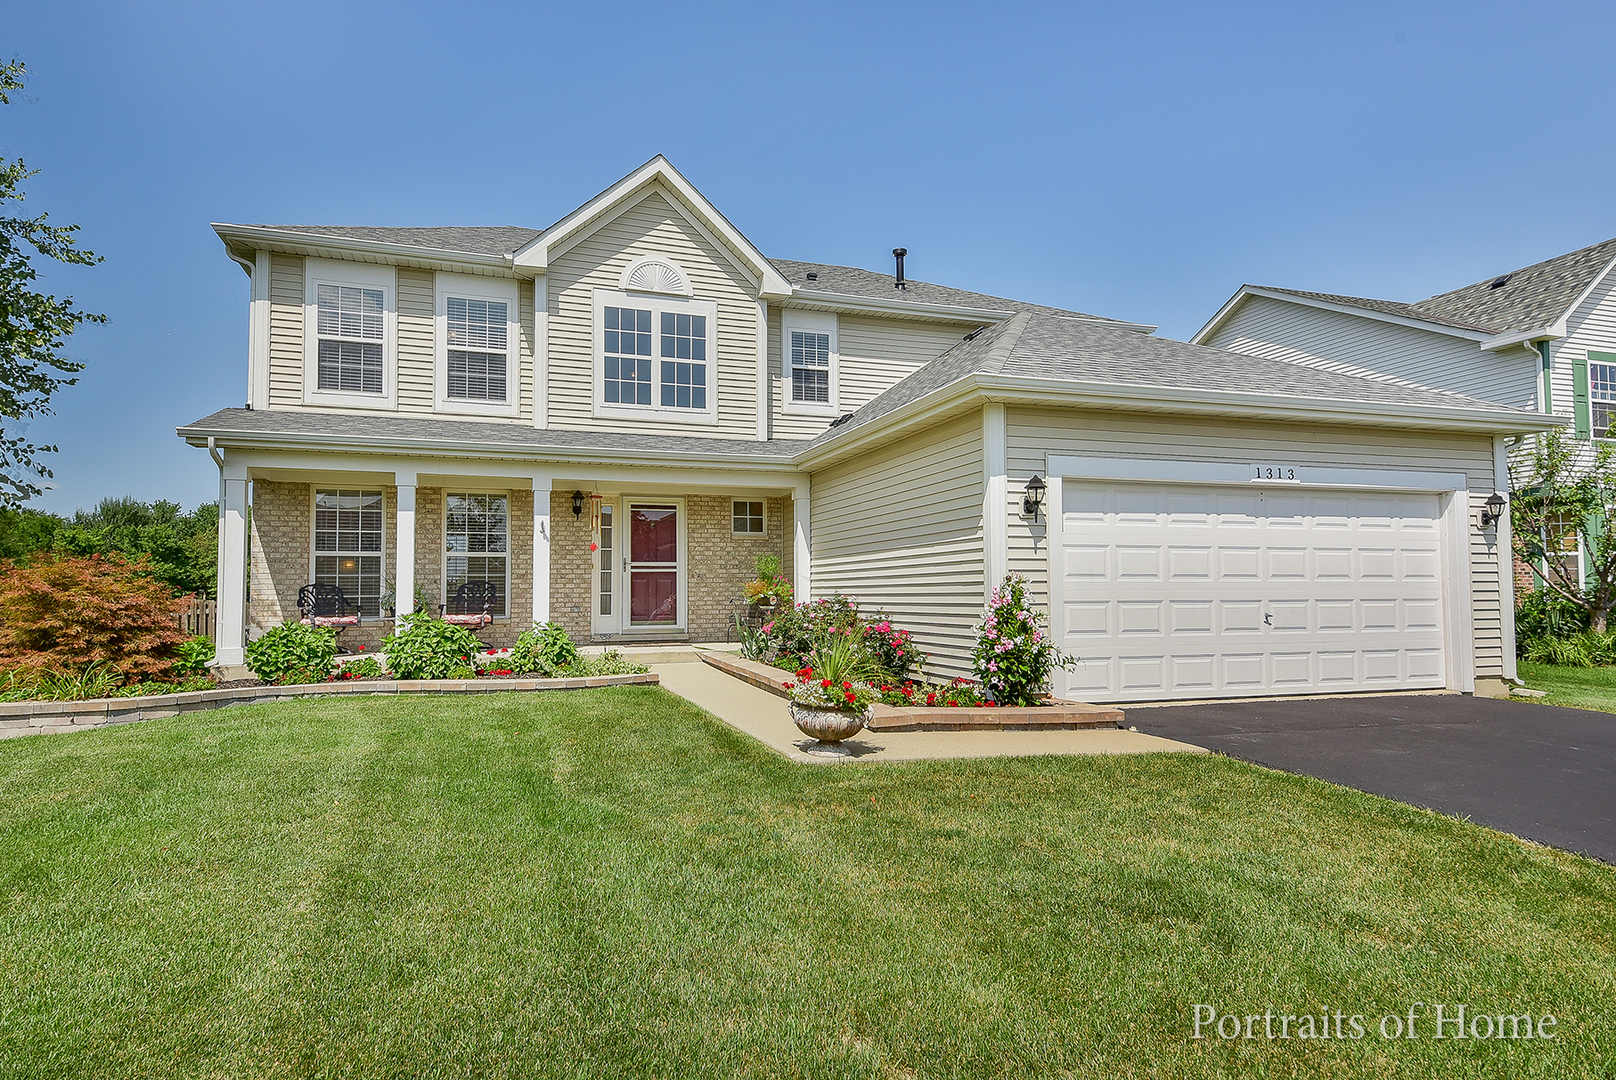 Photo of 1313 Wabena Avenue  MINOOKA  IL